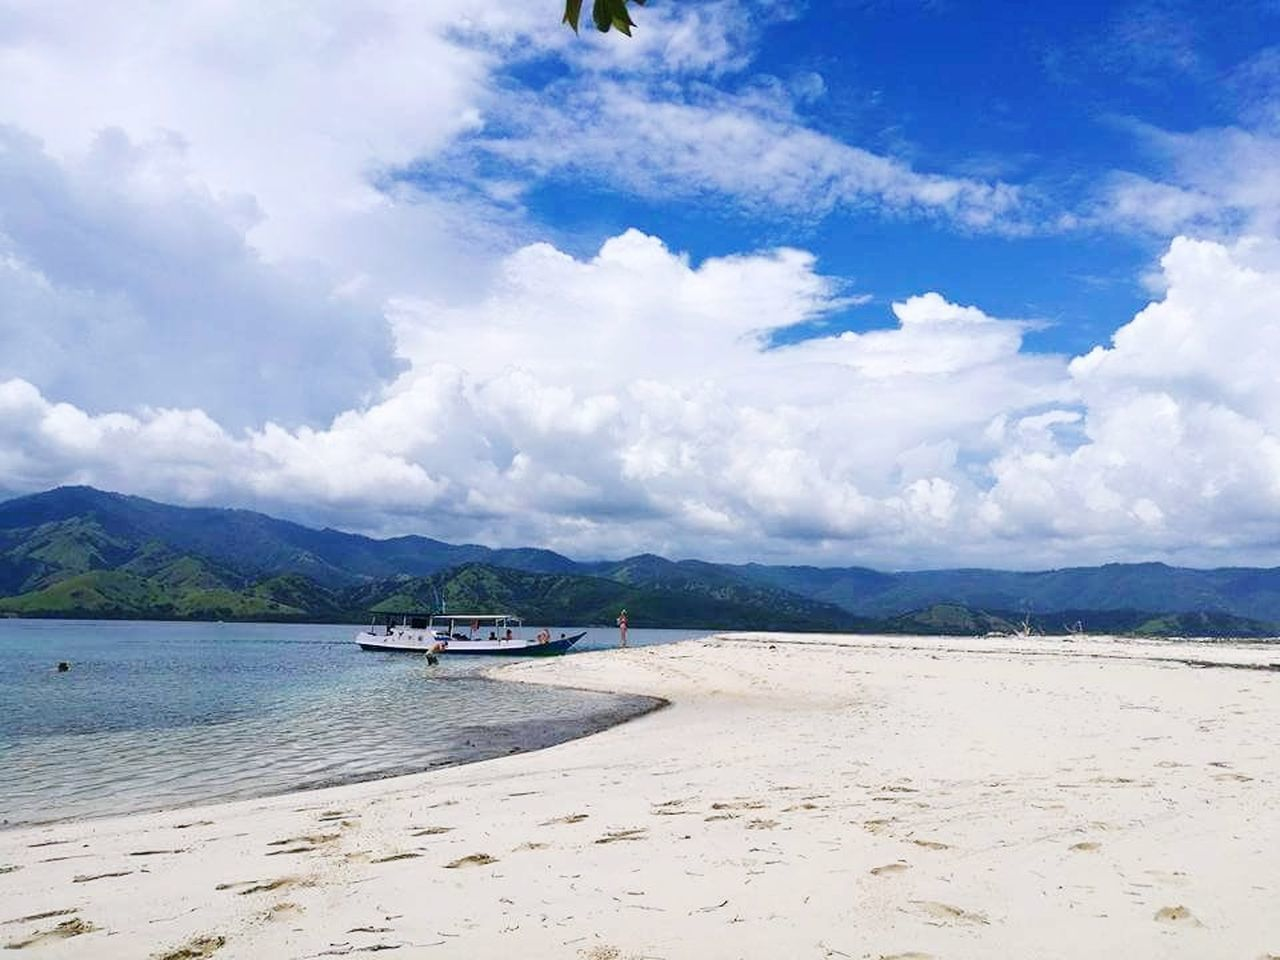 beach, mountain, cloud - sky, sand, sky, scenics, nature, sea, water, beauty in nature, outdoors, day, tranquility, landscape, no people, tree